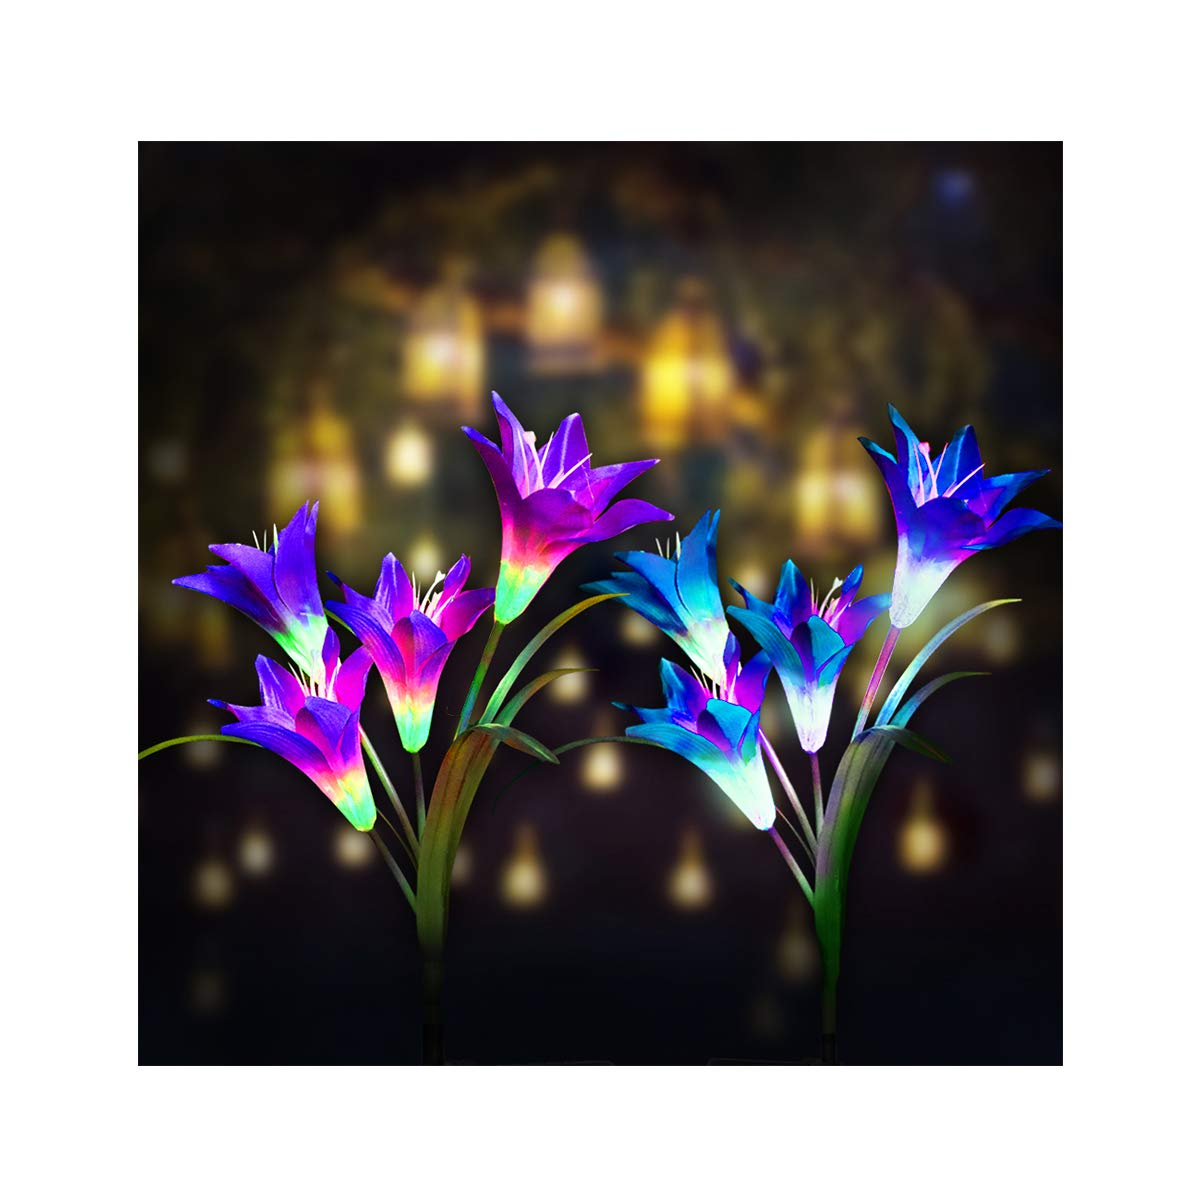 Digiroot Waterproof Outdoor Solar Garden Stake lights 2 Packs Solar Powered Garden Lights with 8 Lily Flower Multi Color Changing LED Solar Stake Lights for Garden Patio Backyard Decor